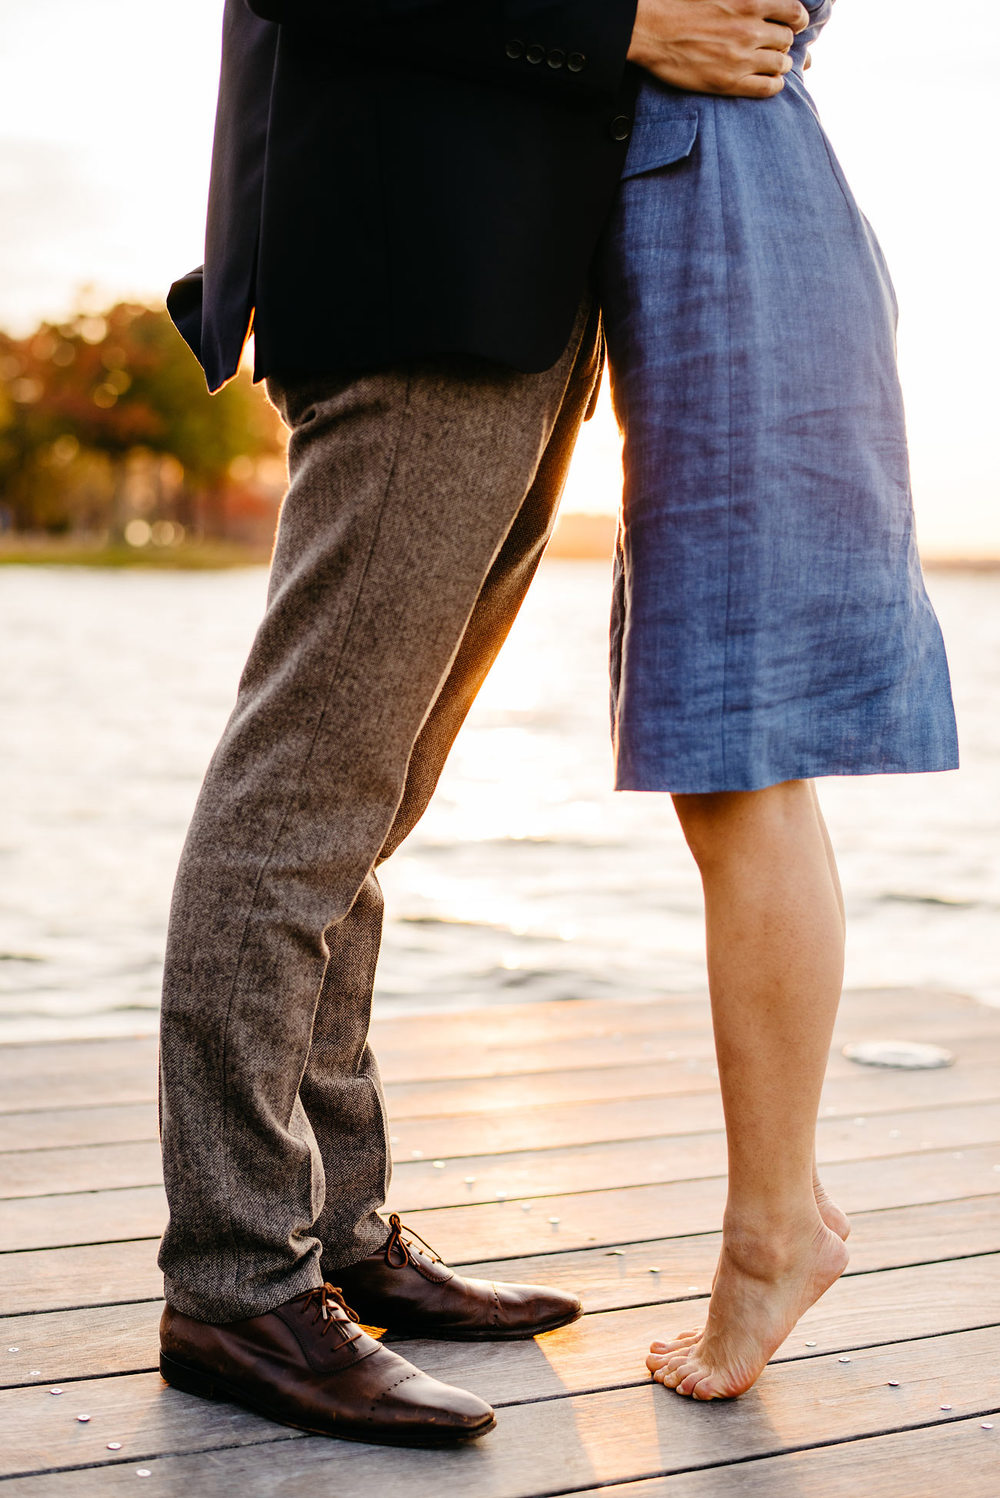 cute couple girl barefoot kissing on the dock at boston esplanade engagement photography